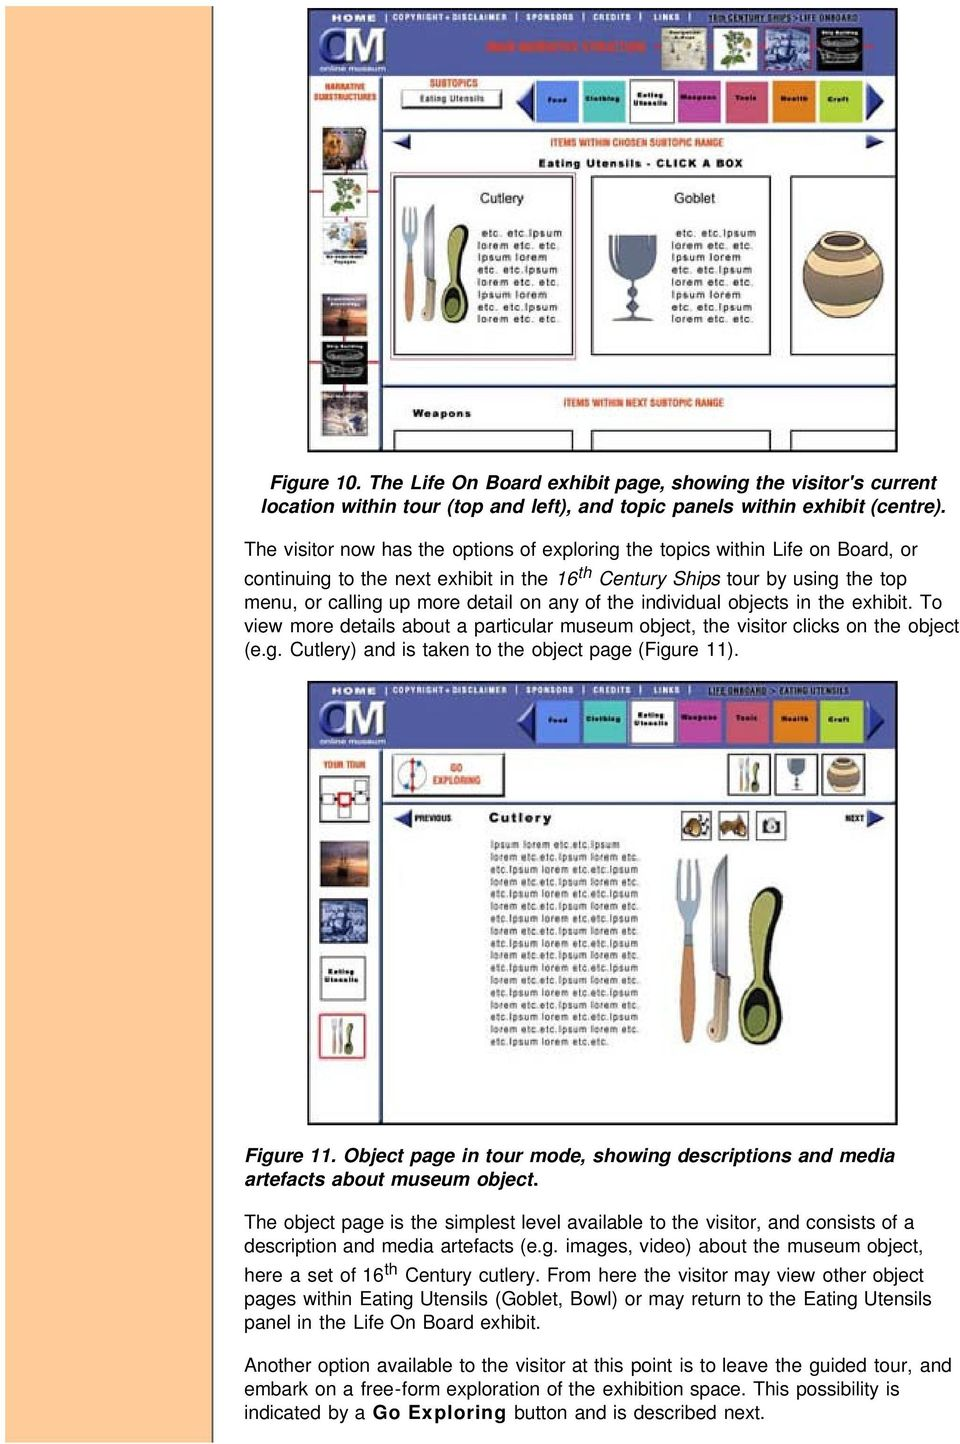 of the individual objects in the exhibit. To view more details about a particular museum object, the visitor clicks on the object (e.g. Cutlery) and is taken to the object page (Figure 11). Figure 11.